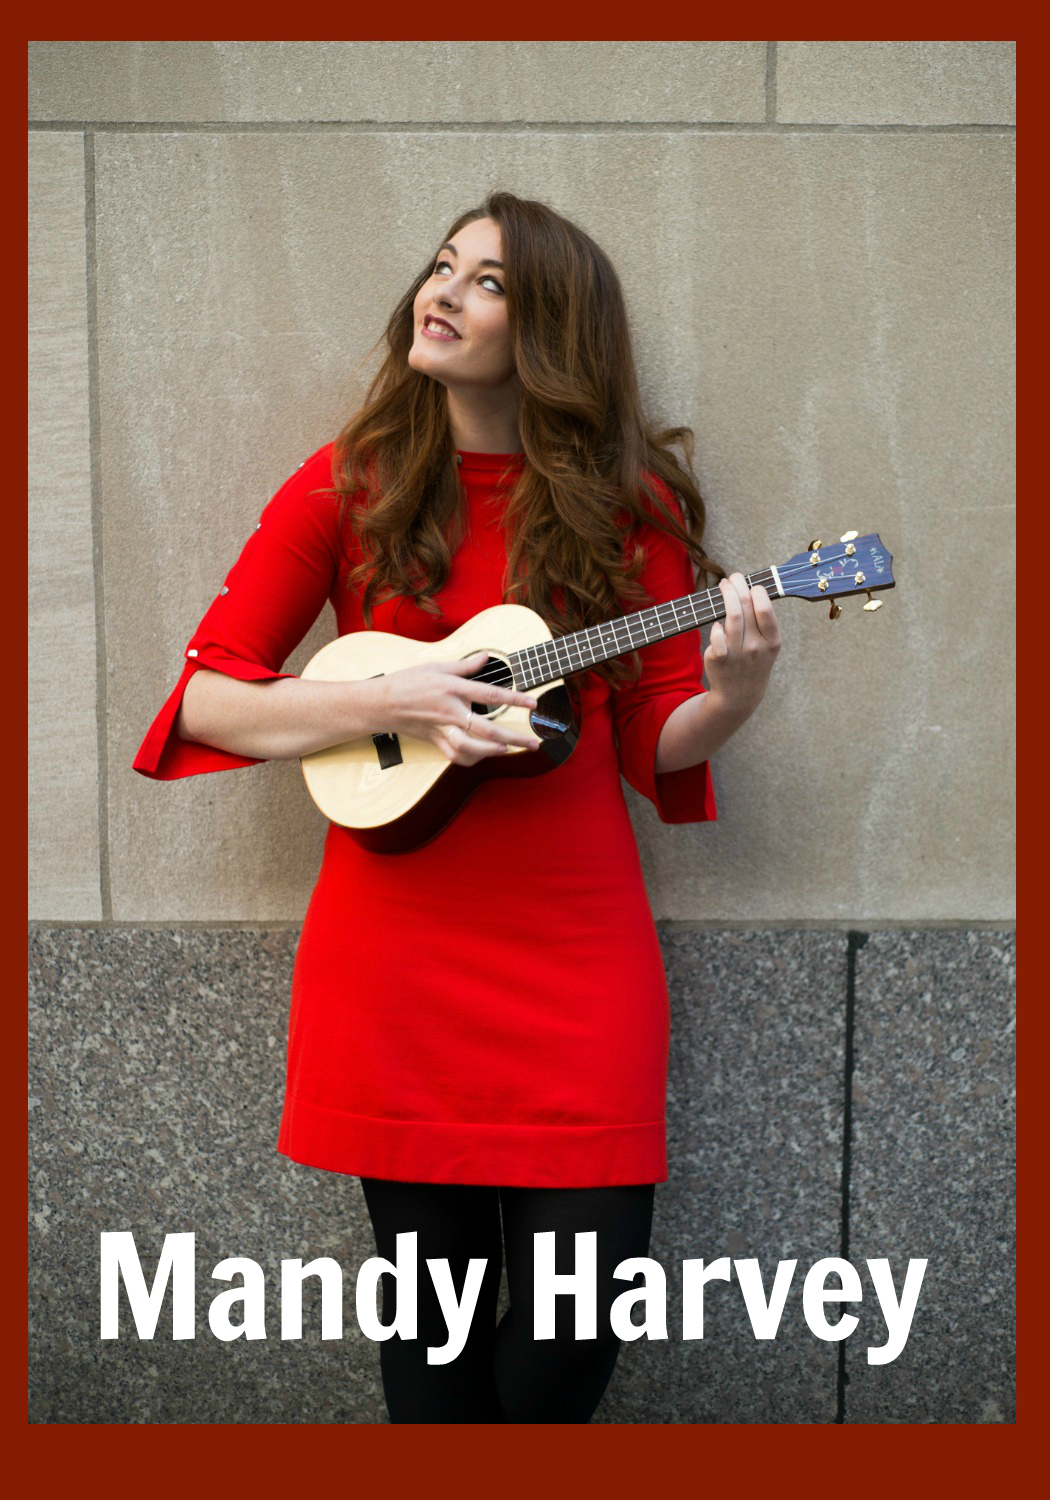 Mandy-Harvey-Web-2.jpg